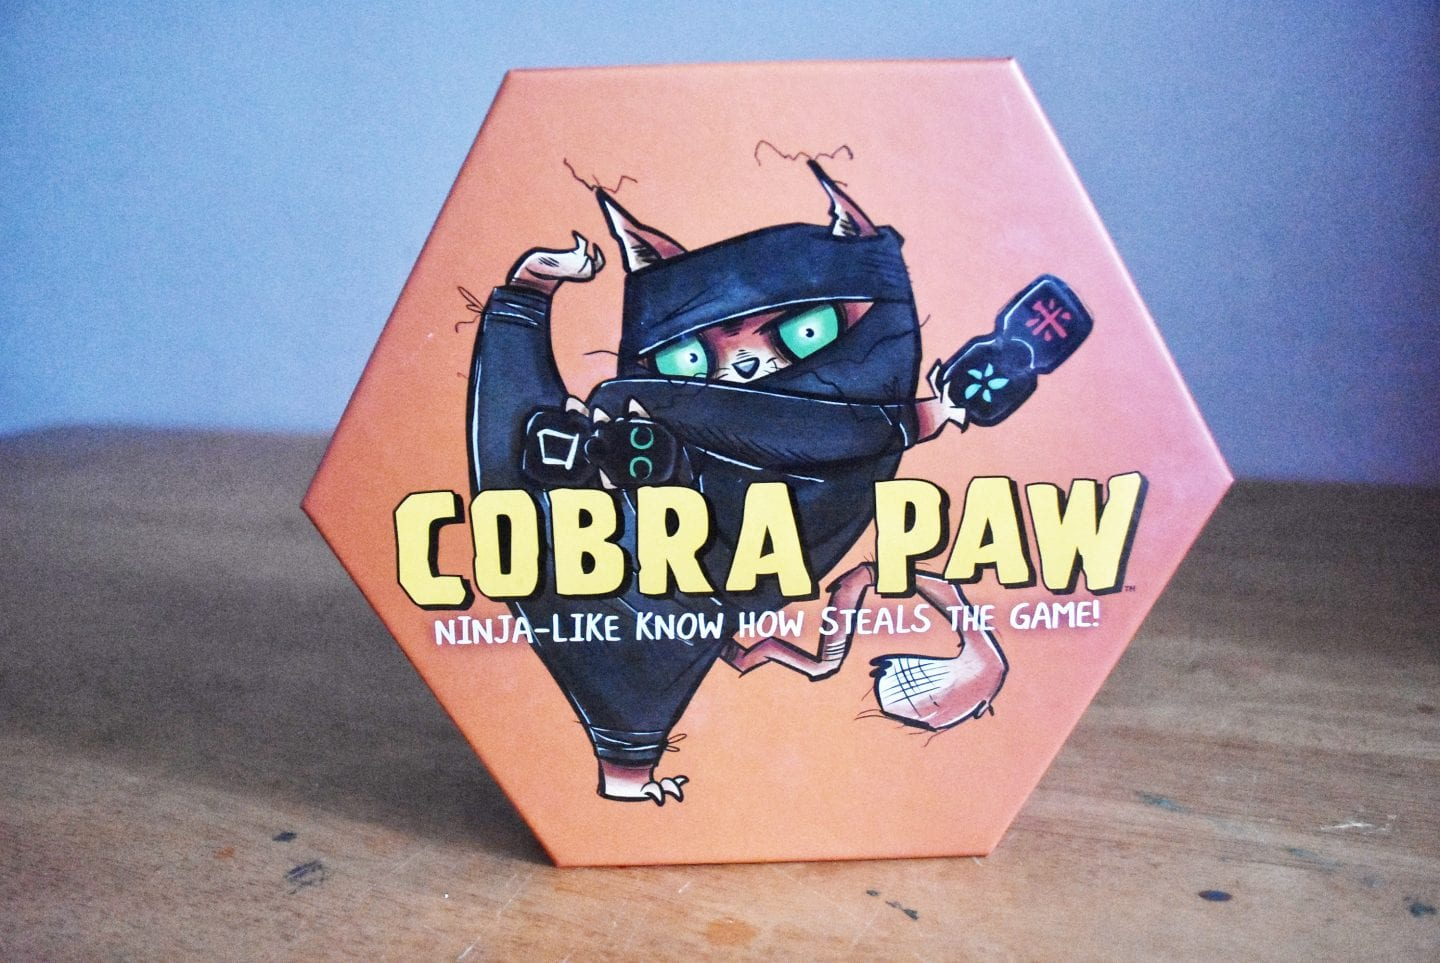 Cobra Paw from Asmodee Games